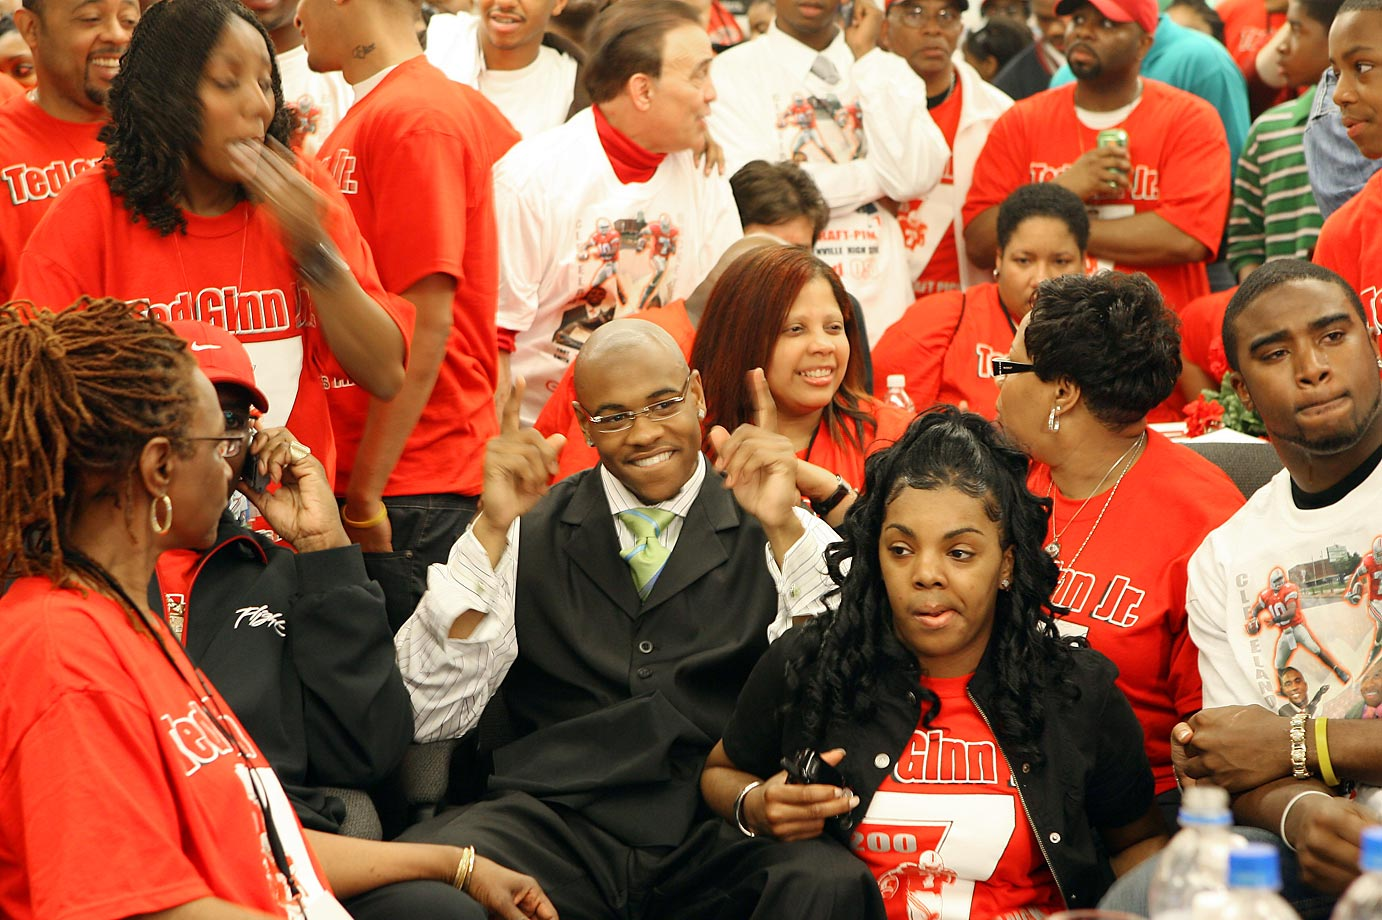 Ohio State wide receiver Ted Ginn Jr. embraces his mother and girlfriend after receiving a phone call from the Miami Dolphins, who chose him with the No. 9 pick in the 2007 draft.